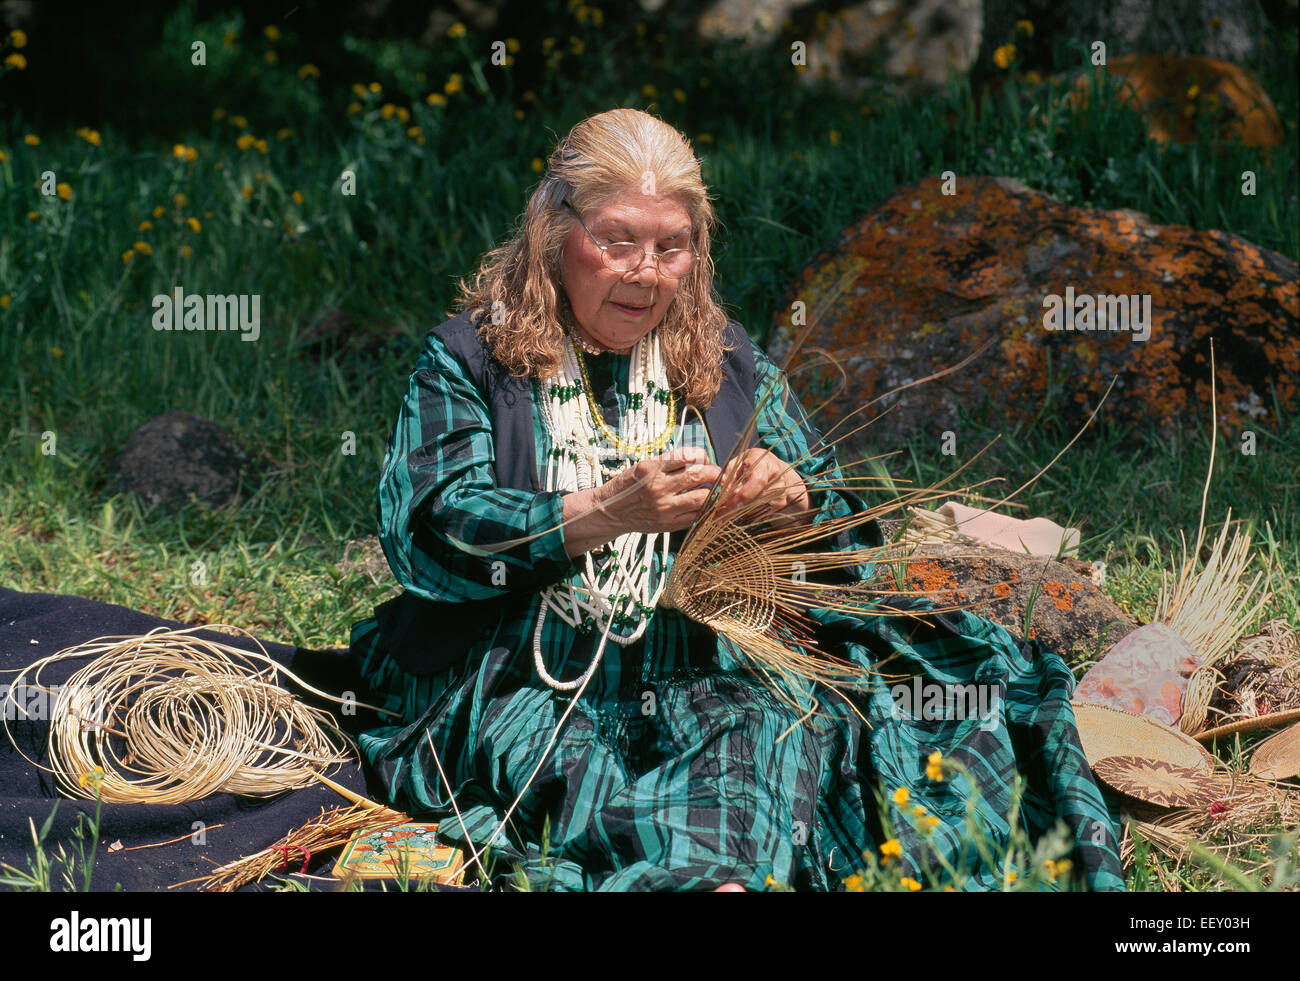 Kashia Pomo woman weaving  traditional 'cone shape acorn gathering basket'. - Stock Image